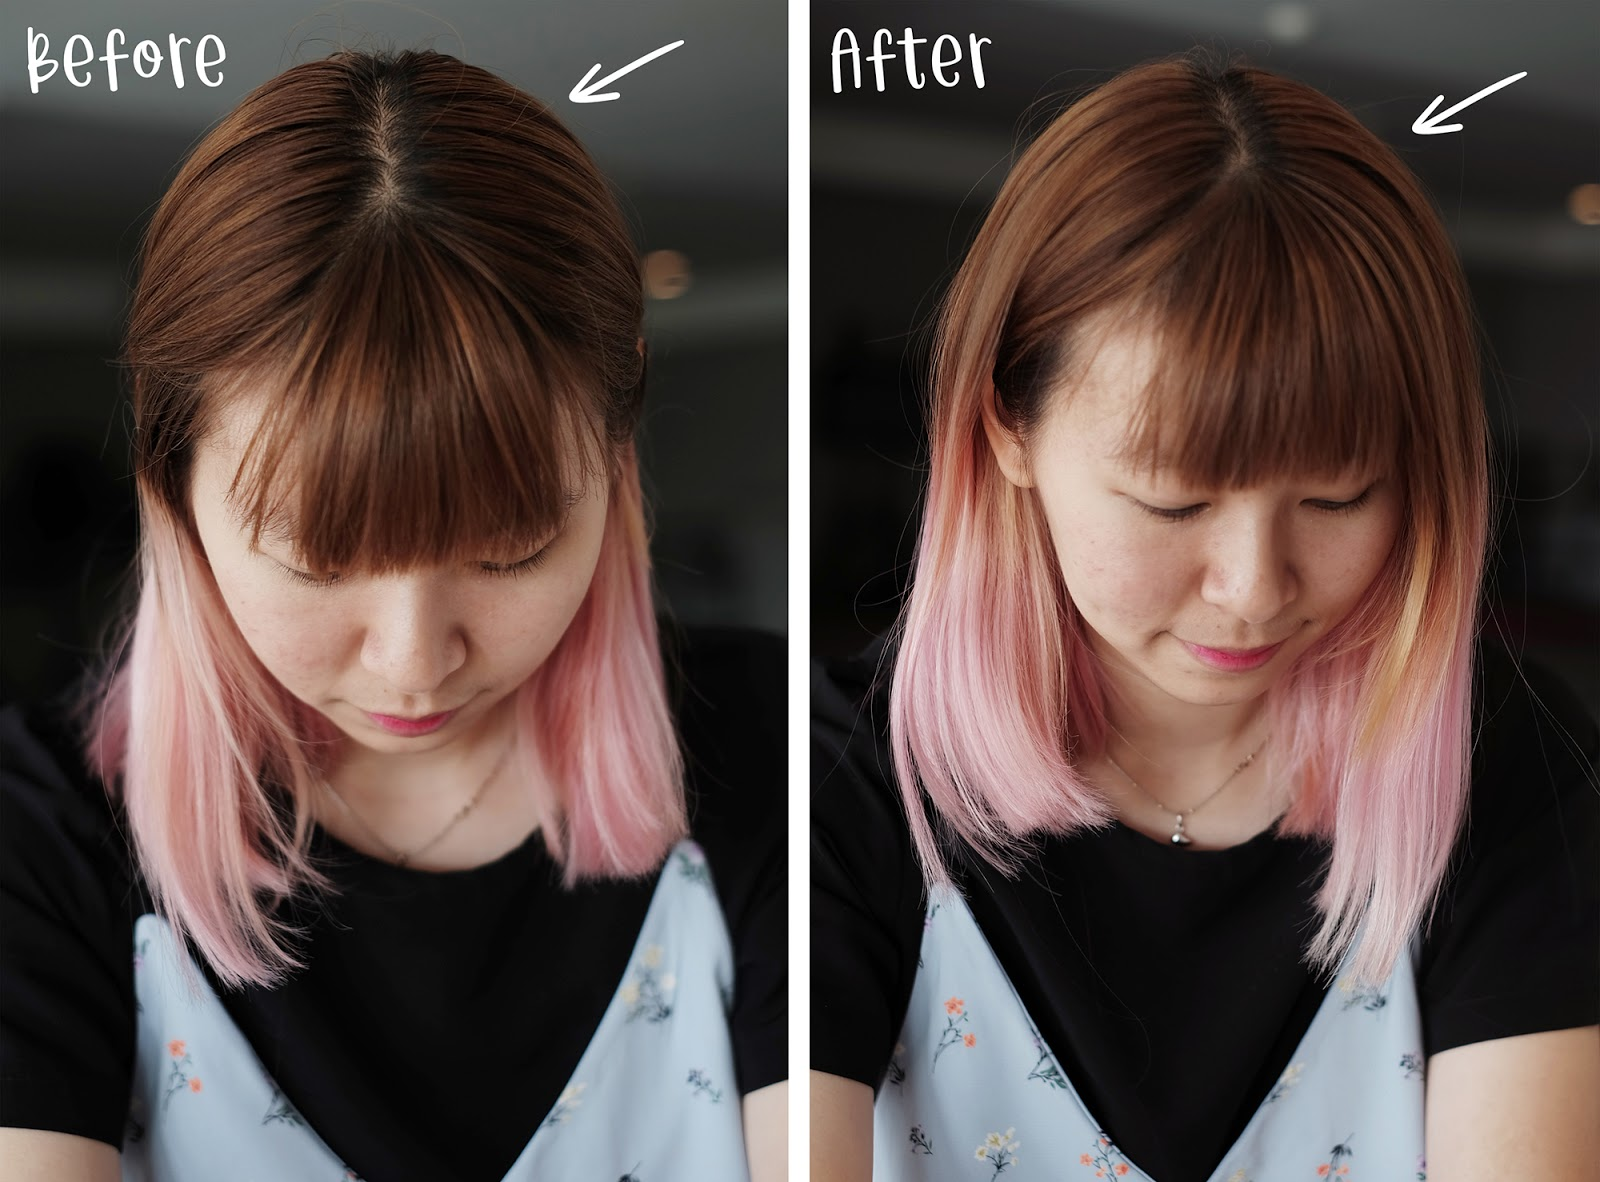 Ellips Dry Shampoo Before After | www.bigdreamerblog.com